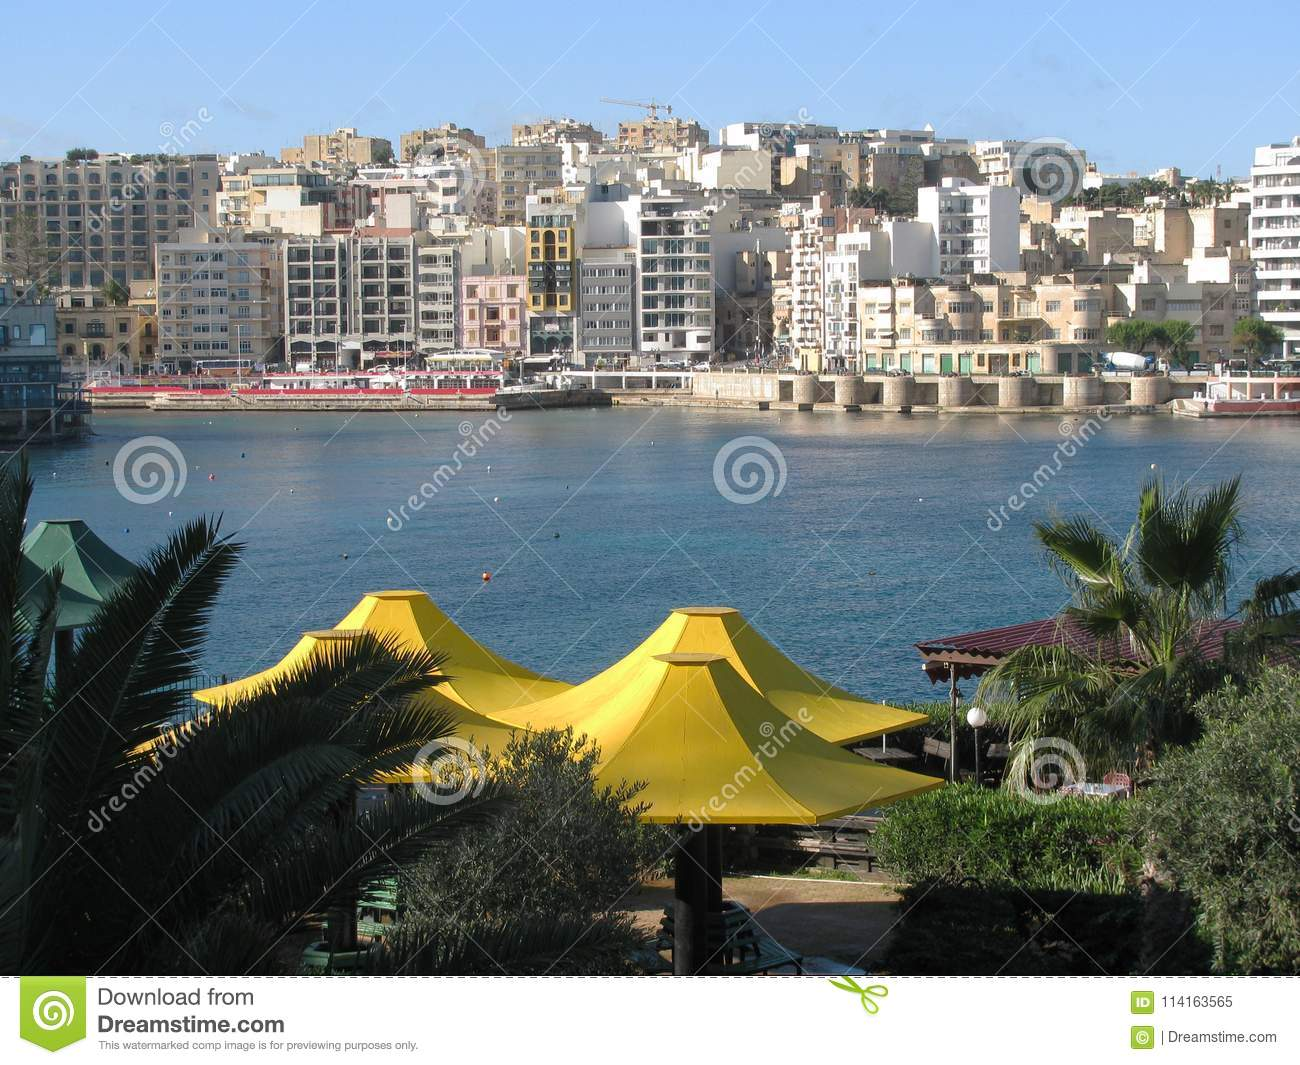 Chic Place malta. valletta. chic place for a pleasant stay. stock image - image